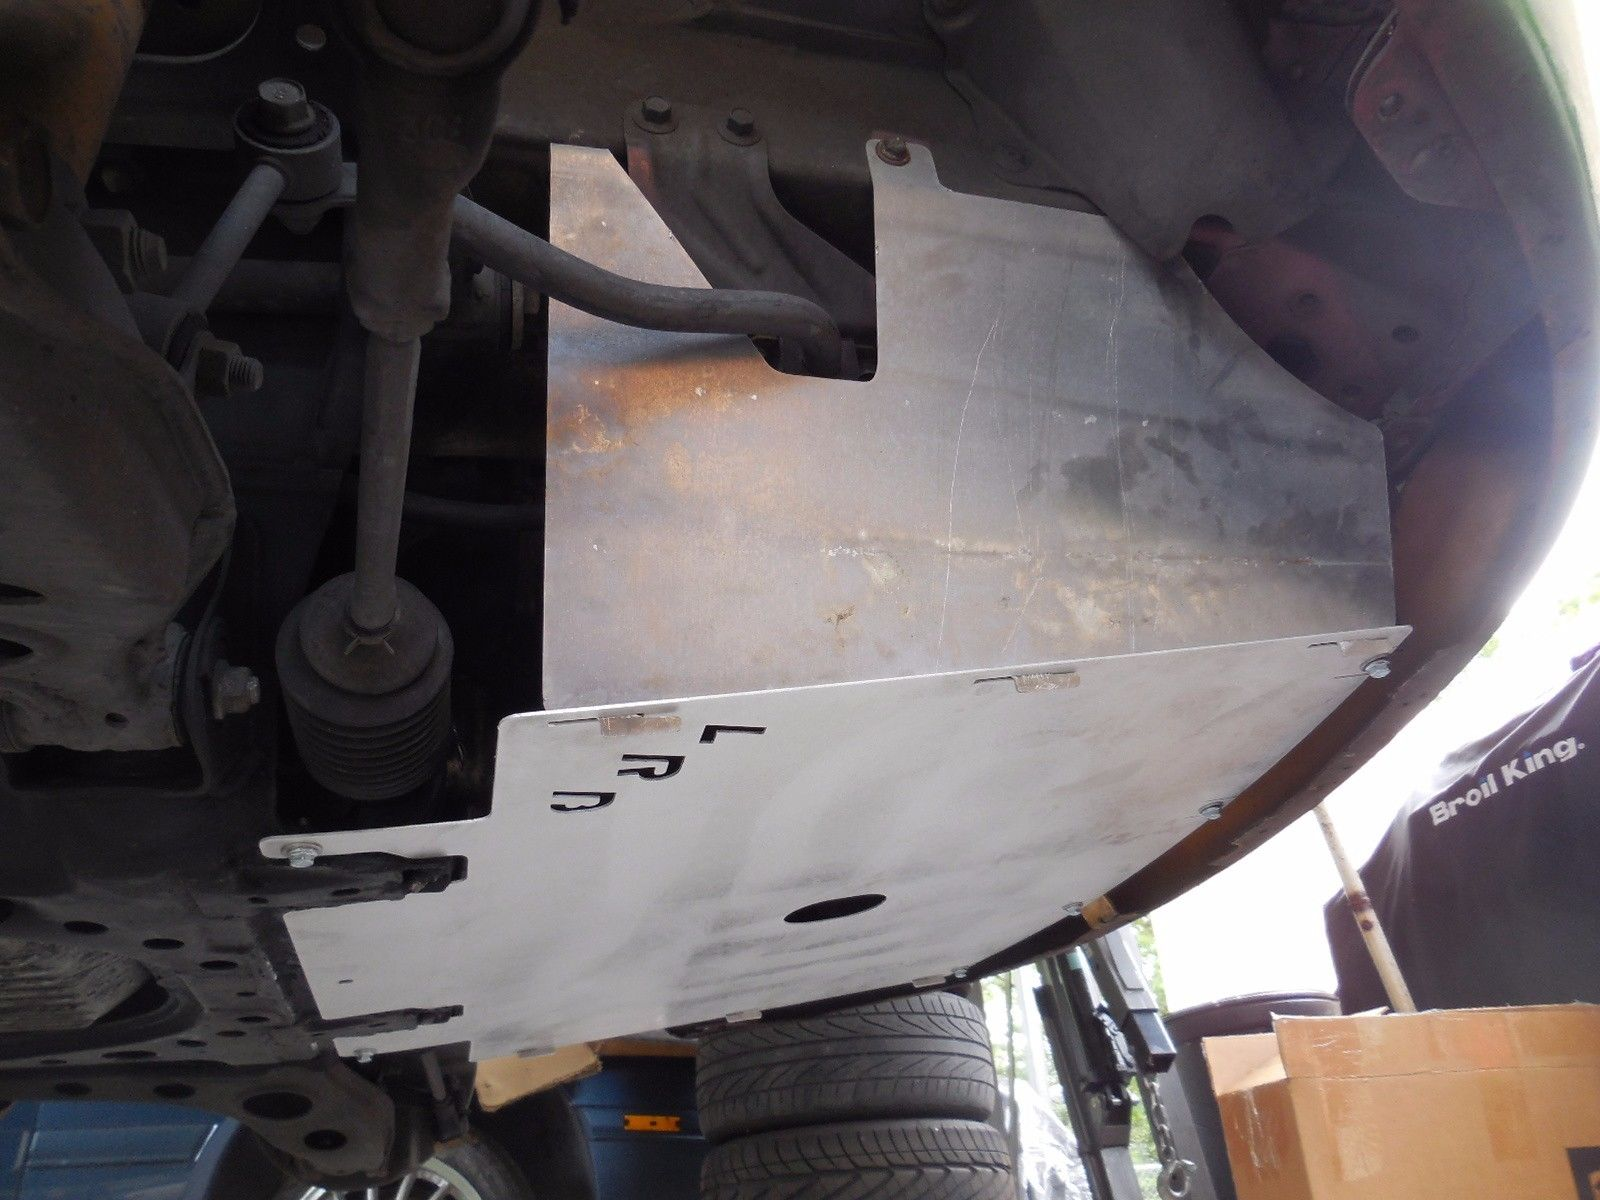 What Does Cnc Stand For >> NA Miata Aluminum Aero Undertray